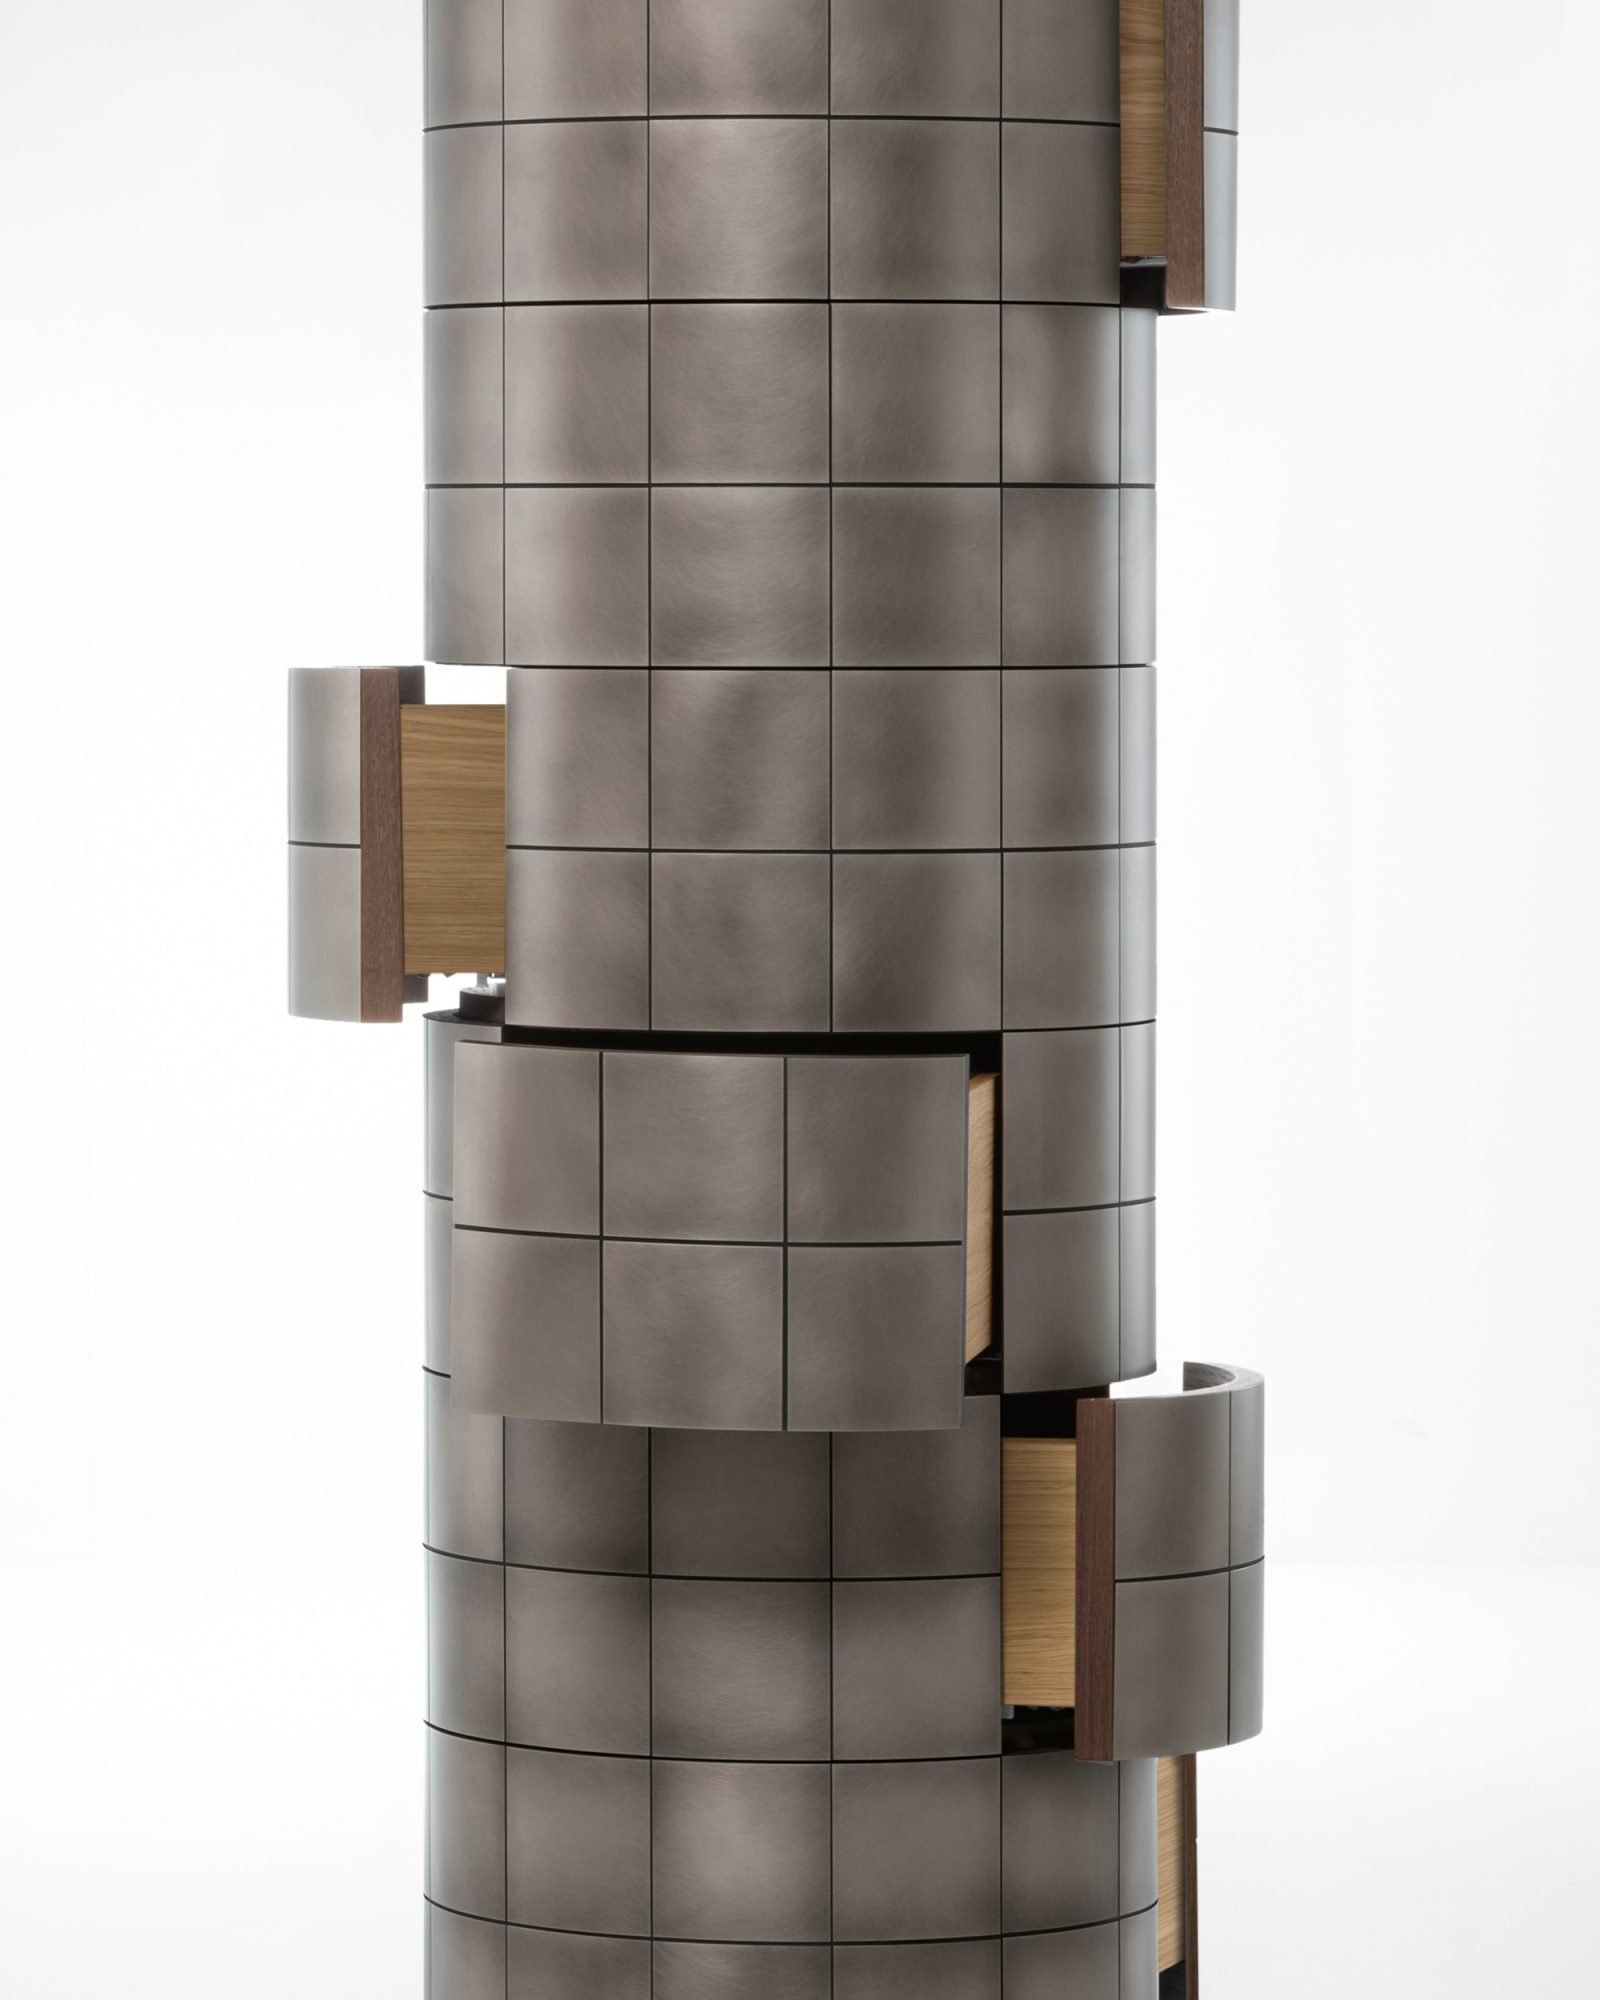 Pandora Cabinets from De Castelli, designed by Martinelli Venezia